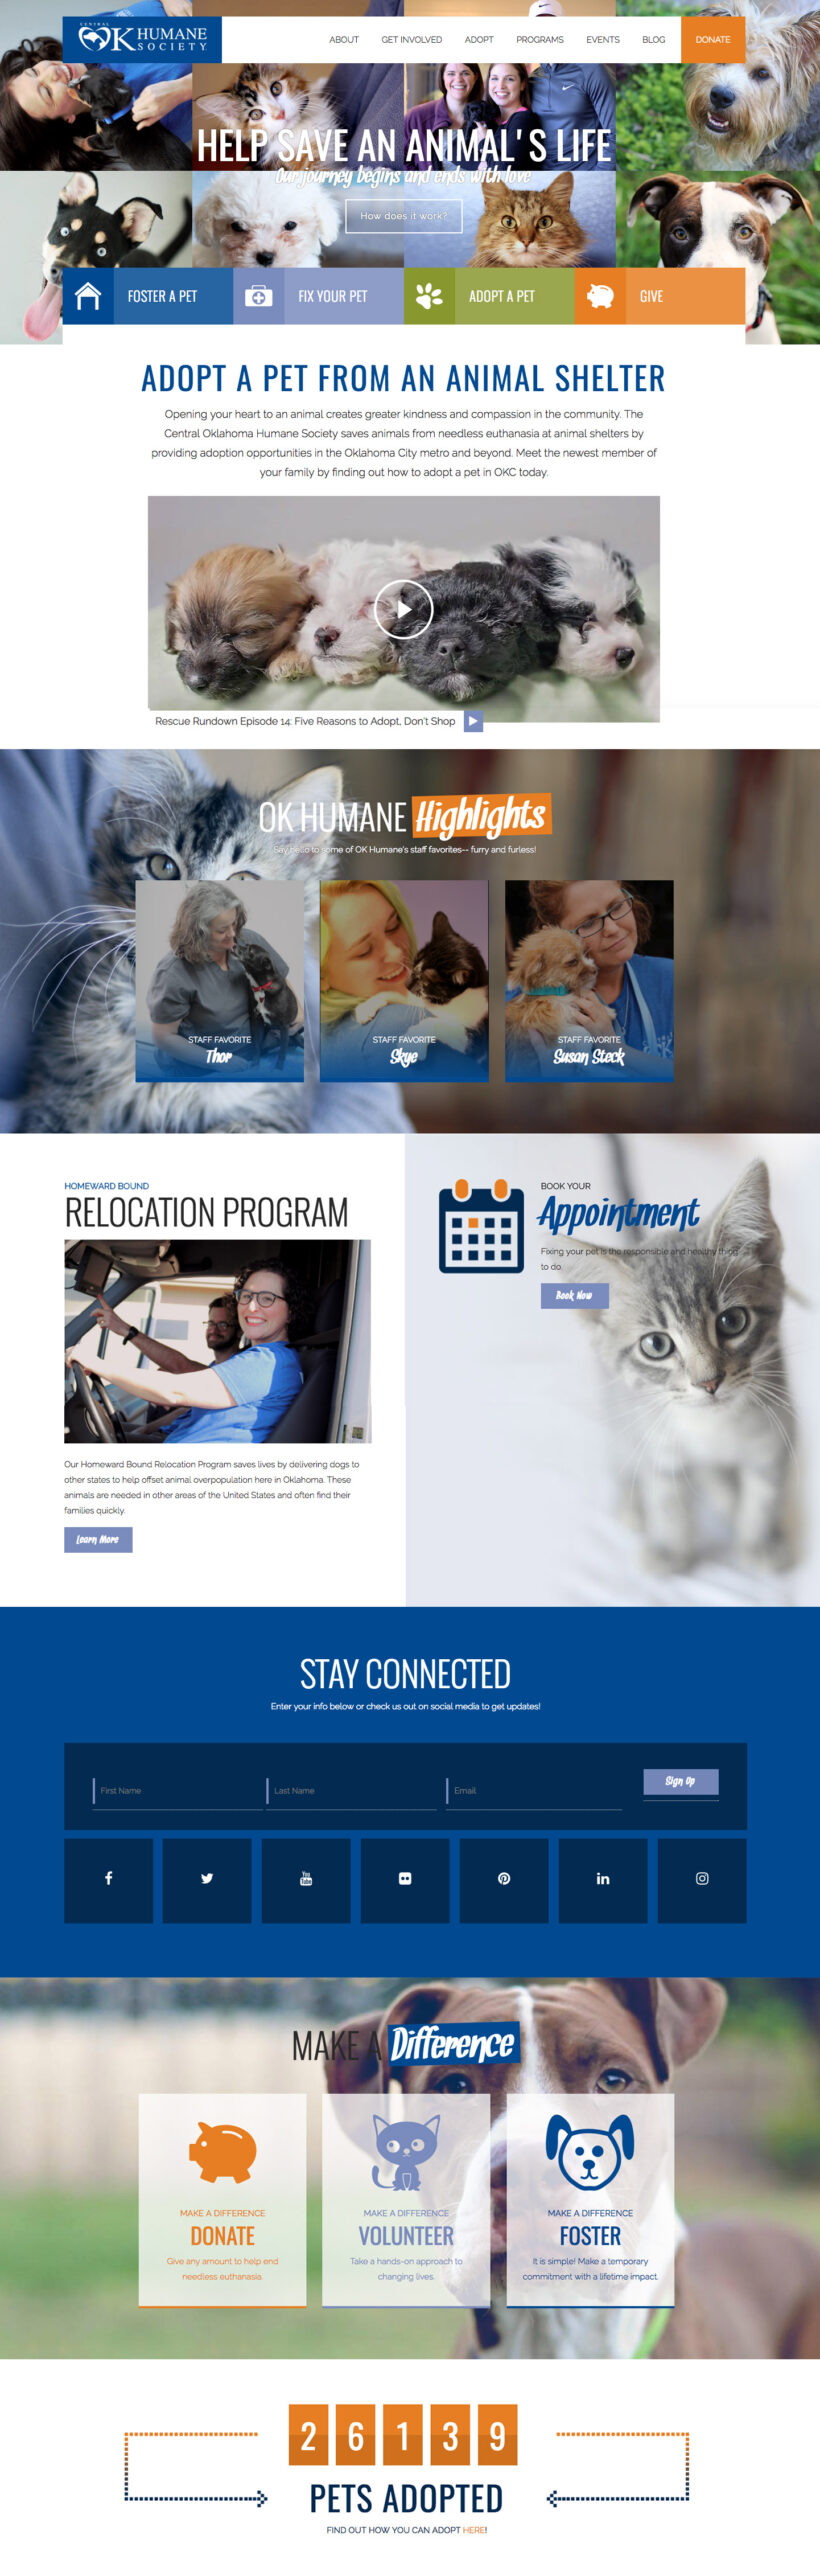 Homepage screenshot for a humane society website redesign project